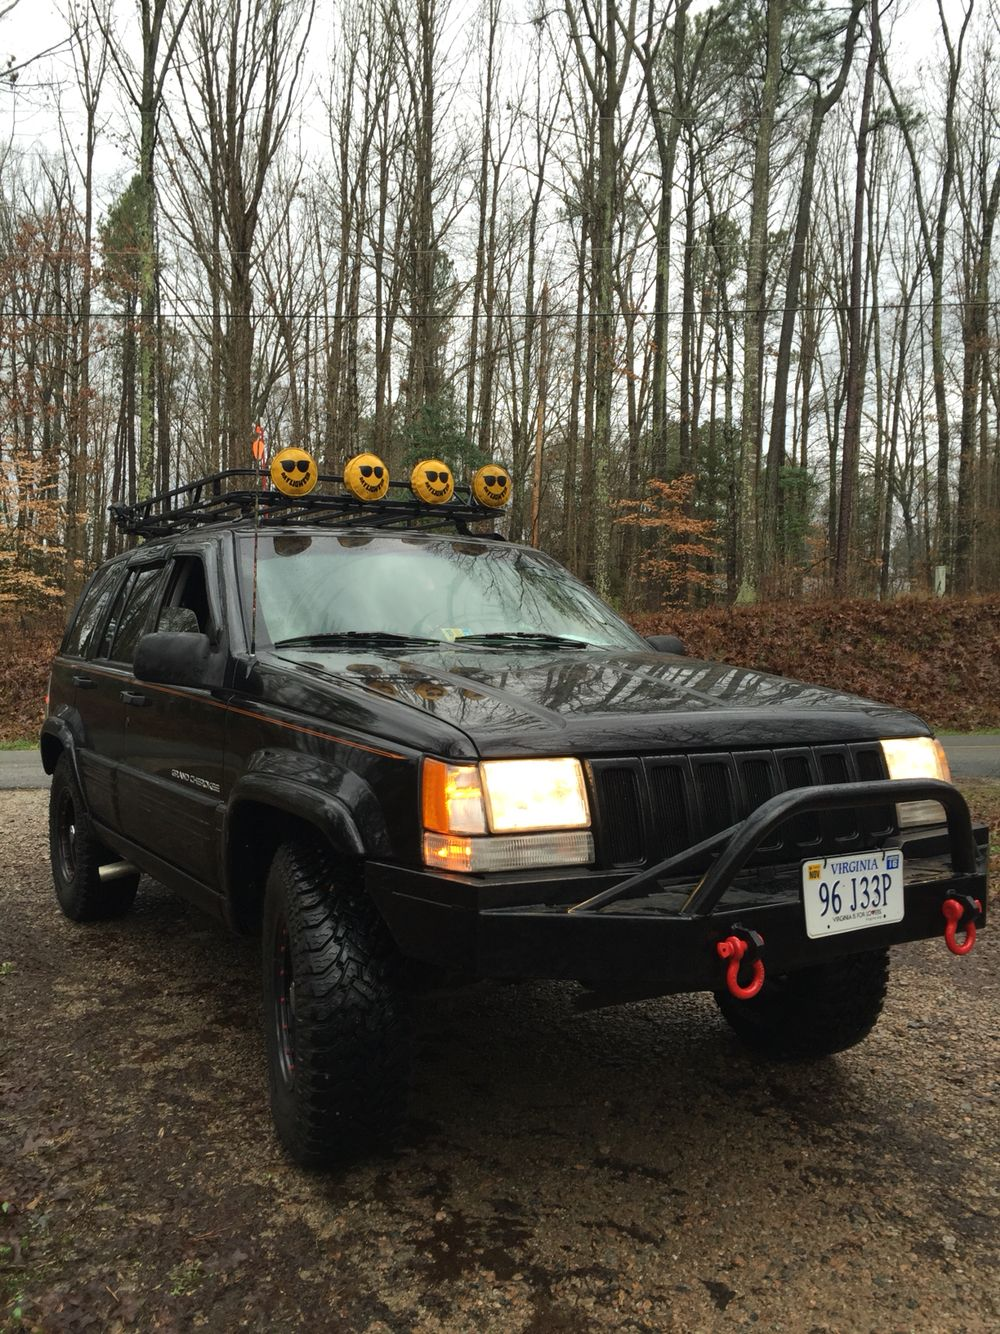 My 96 Jeep ZJ 4.0 with Nates4x4 front bumper and Garvin